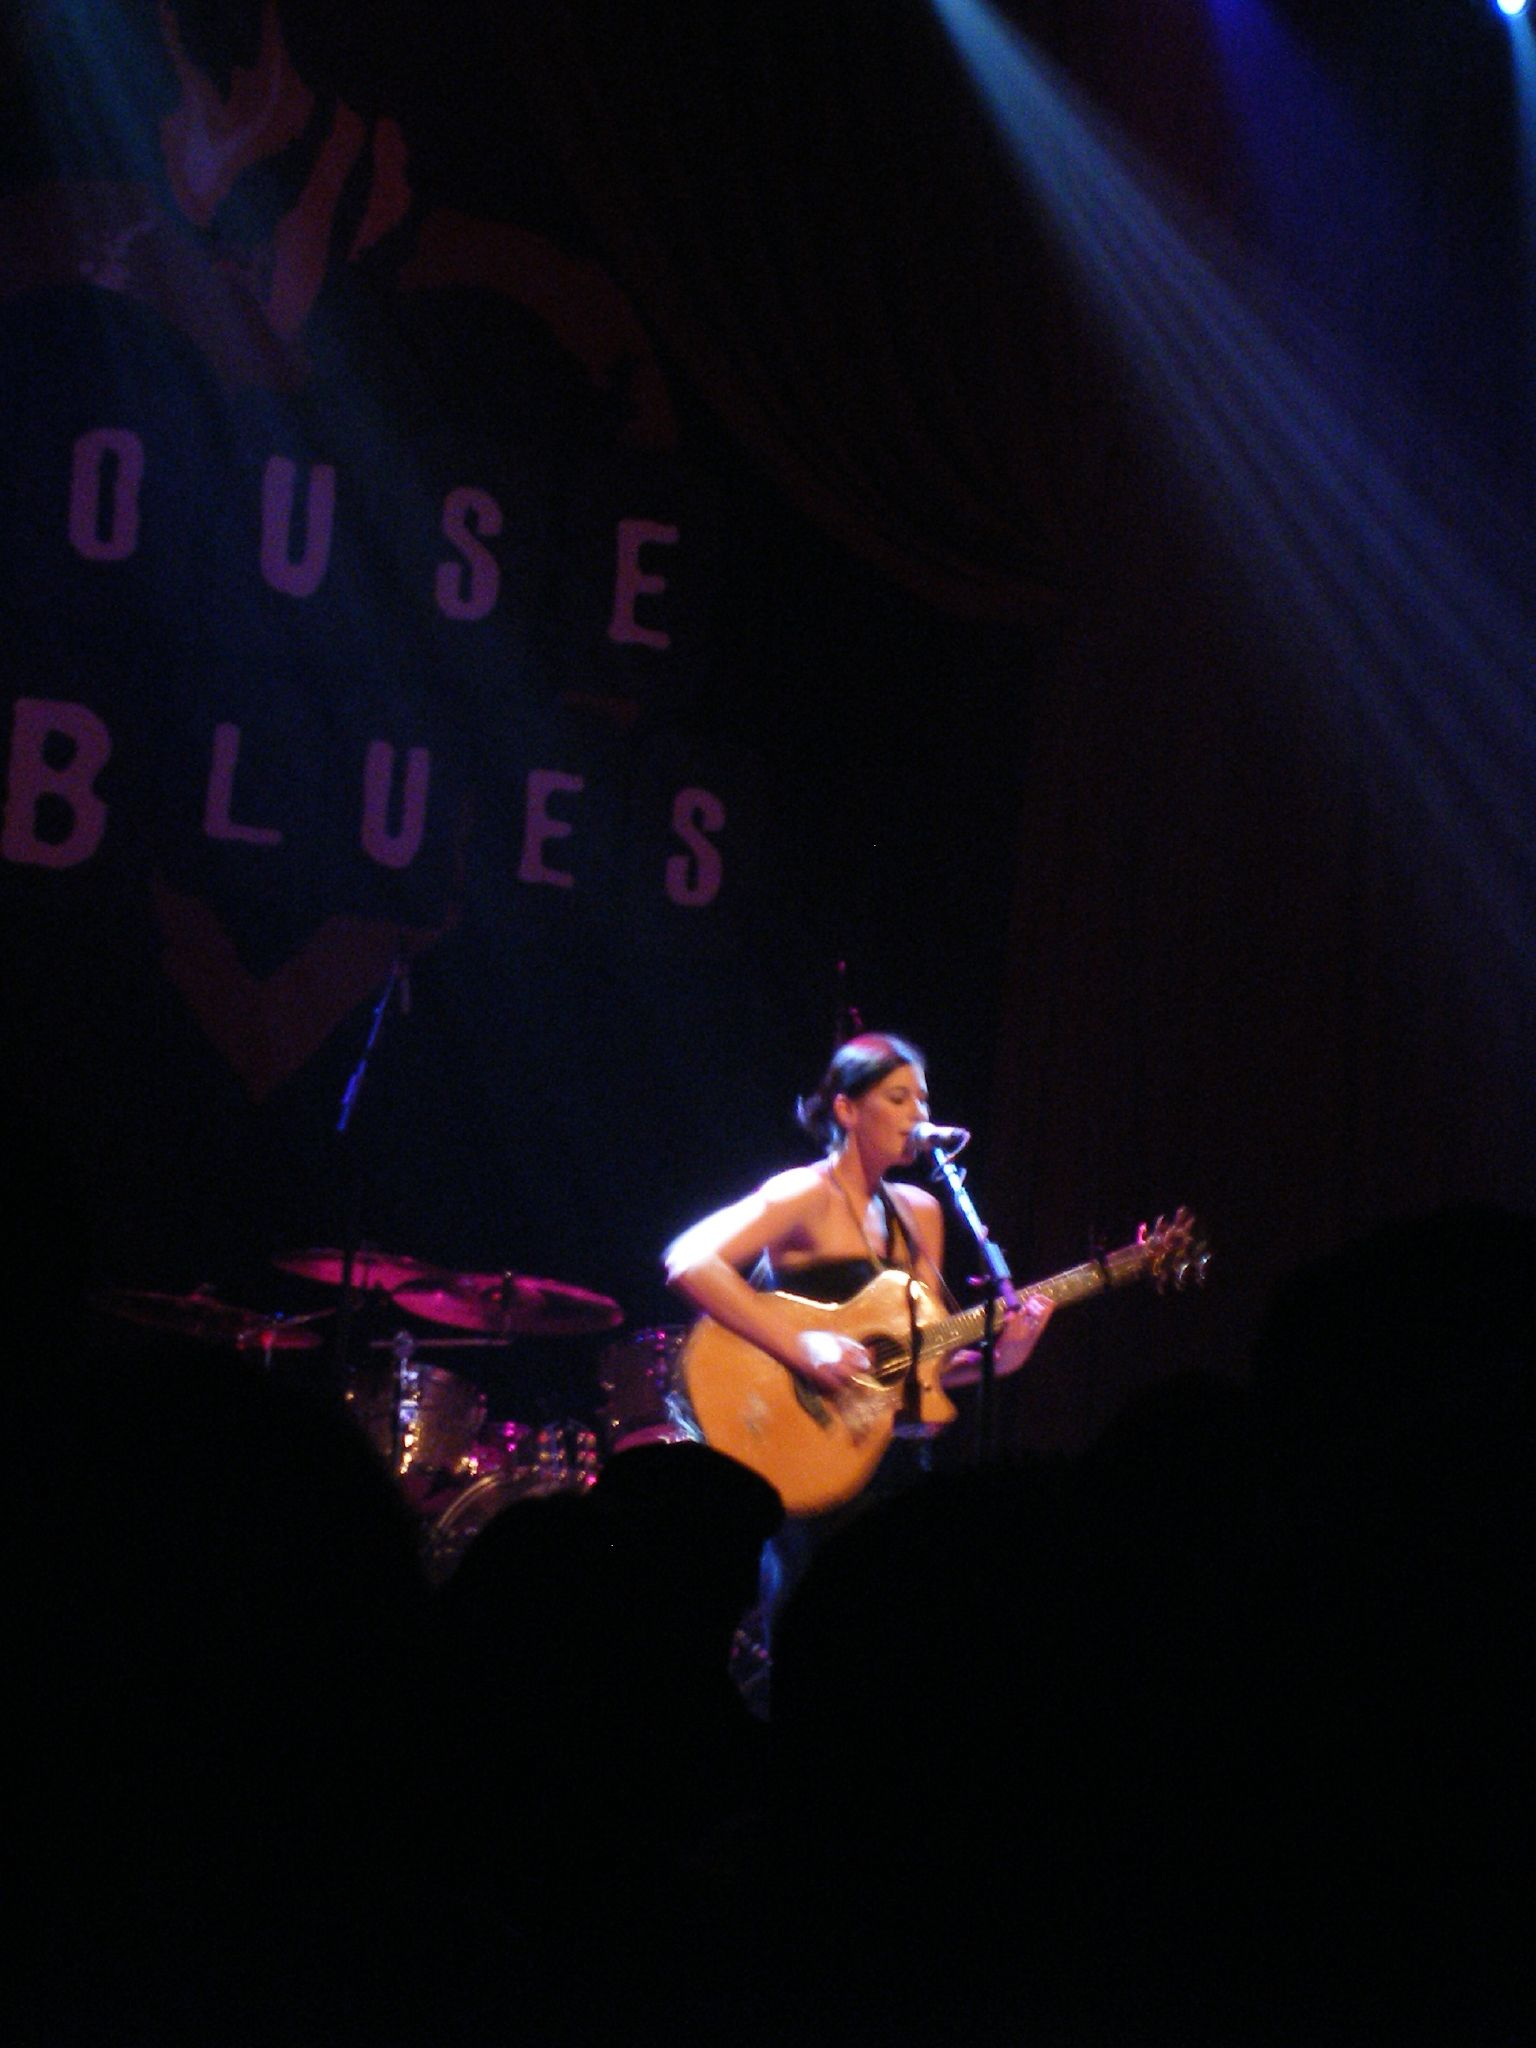 Tristan Prettyman performing at the San Diego, California House of Blues in 2006.